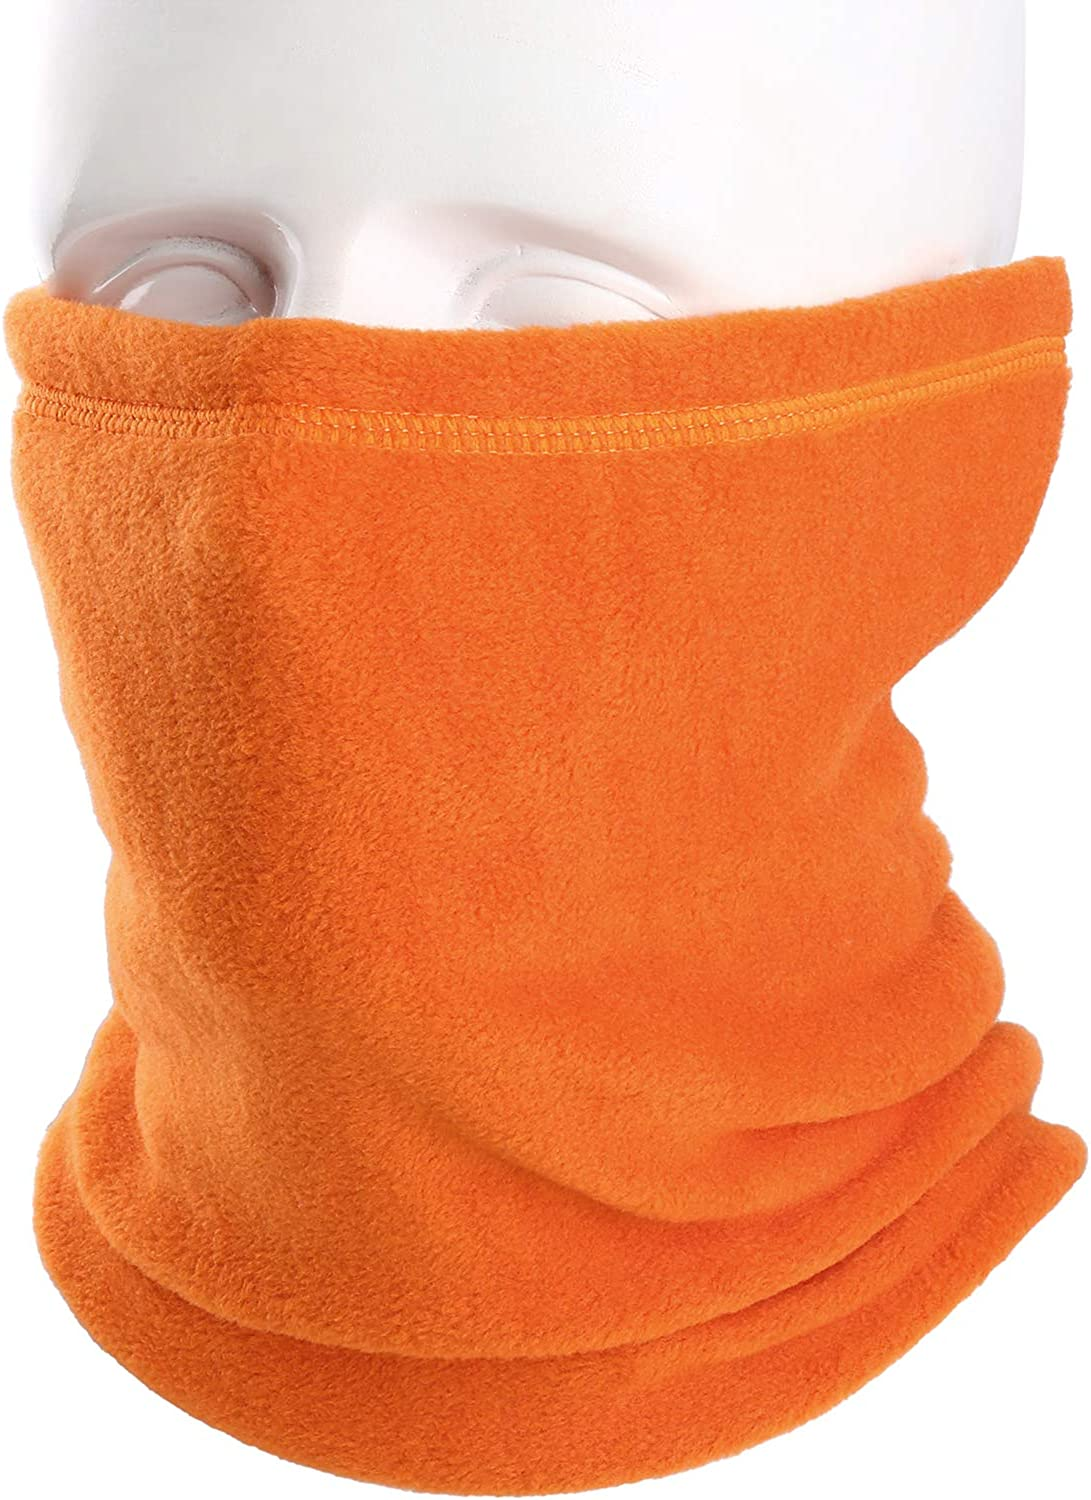 AXBXCX Neck Warmer Gaiter - Windproof Ski Mask - Cold Weather Face Motorcycle Mask Cycling Skull Cap Thermal Scarf for Running Snowboarding Fishing Hunting Off-roading Orange: Clothing